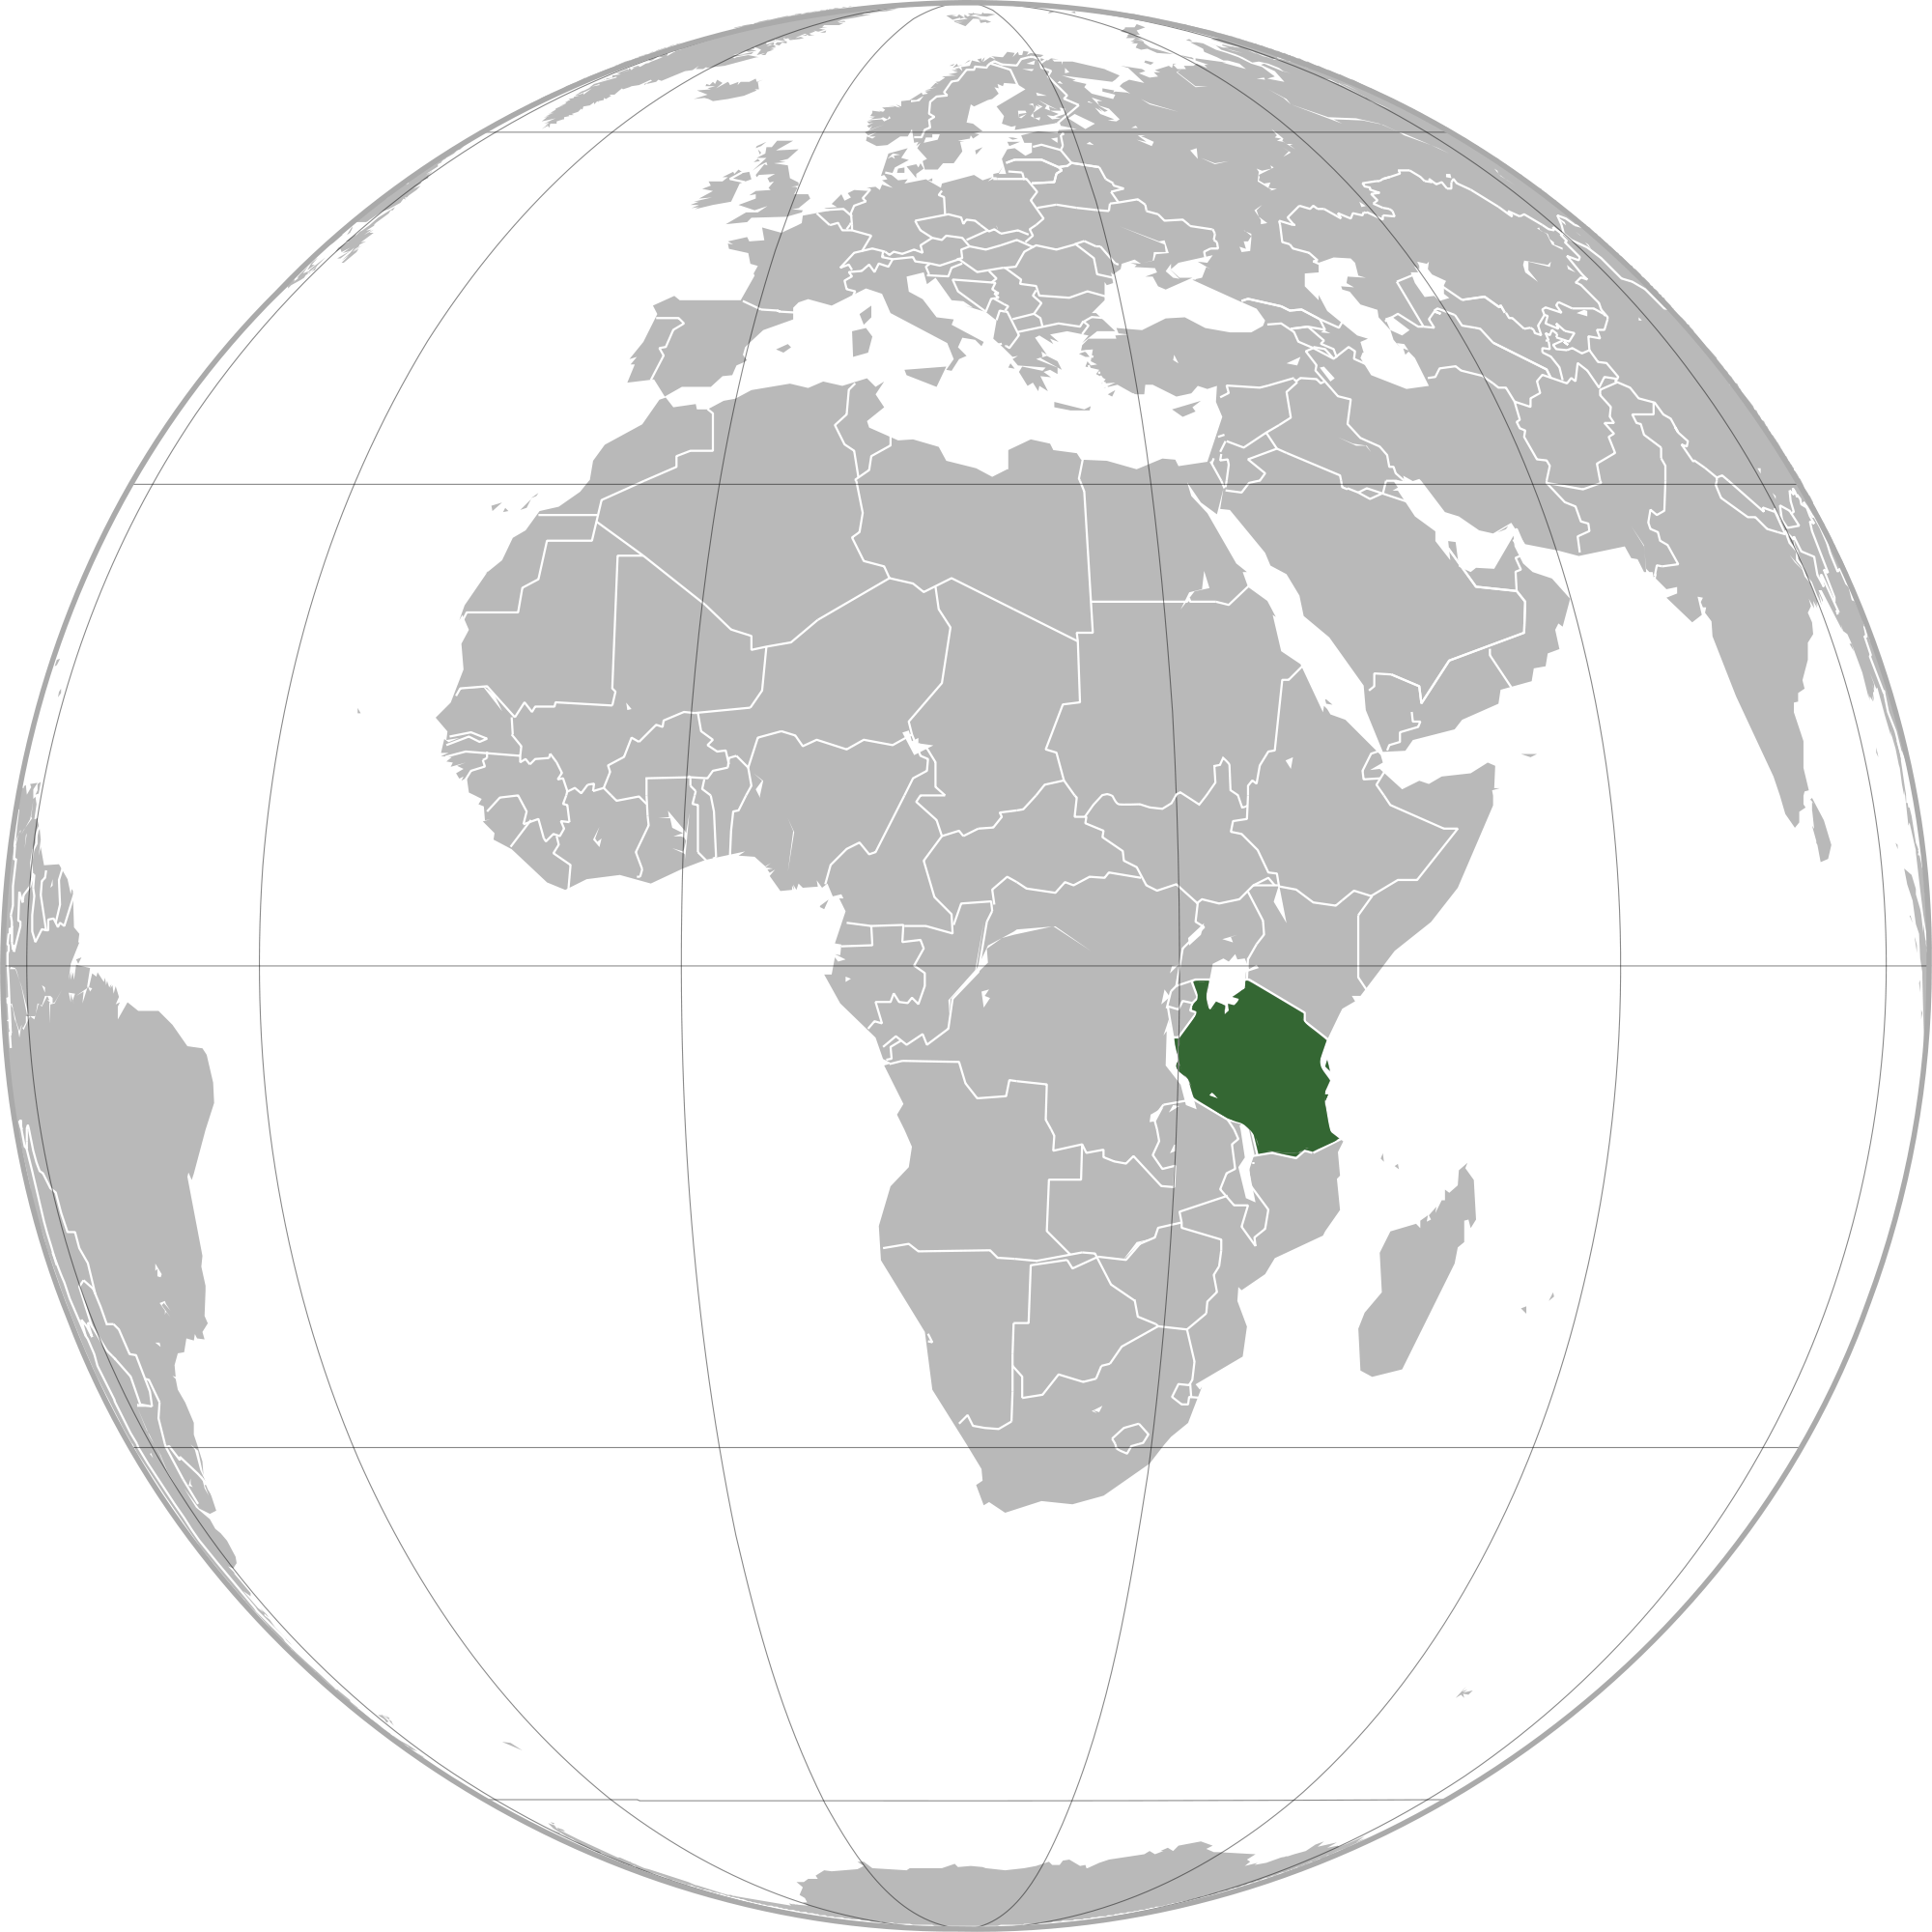 Location of the Tanzania in the World Map